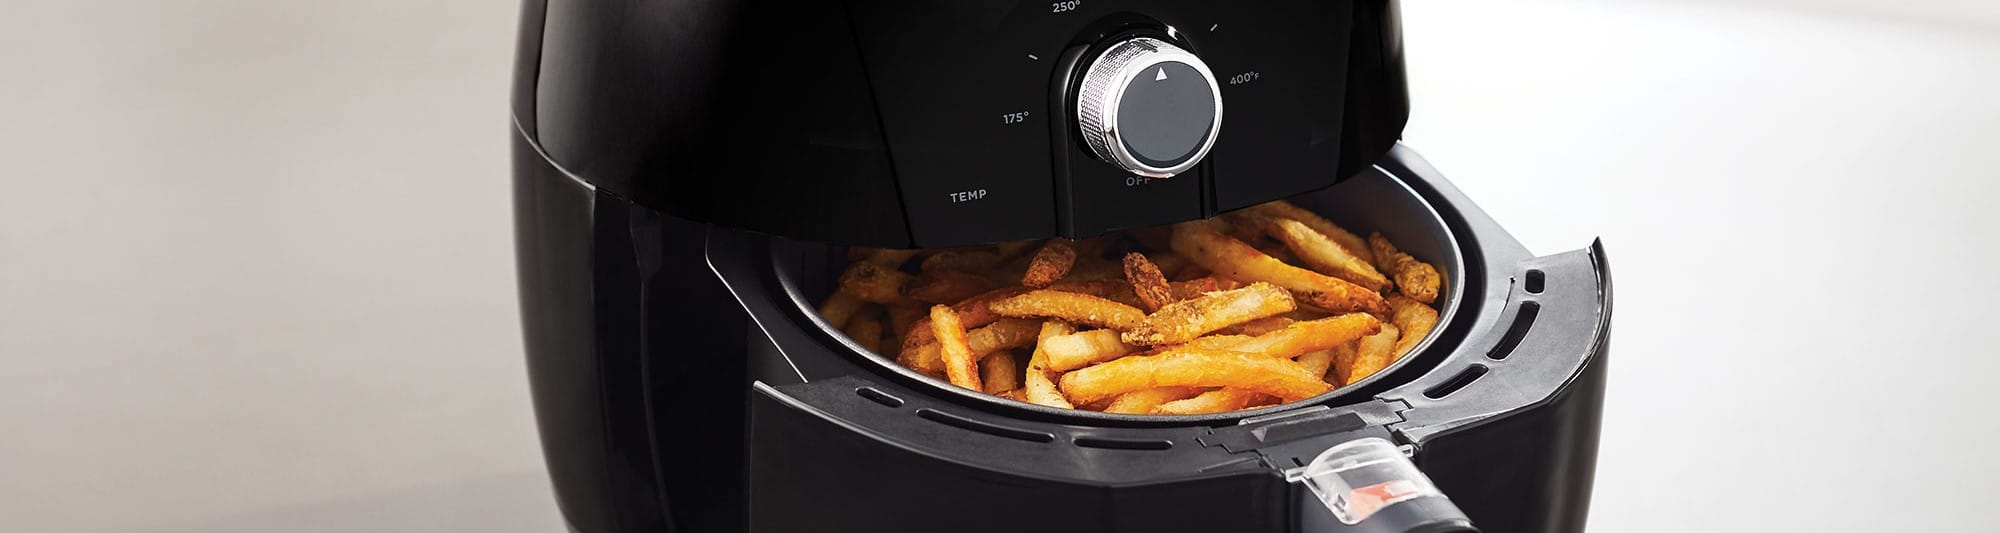 Best Air Fryers for Chips